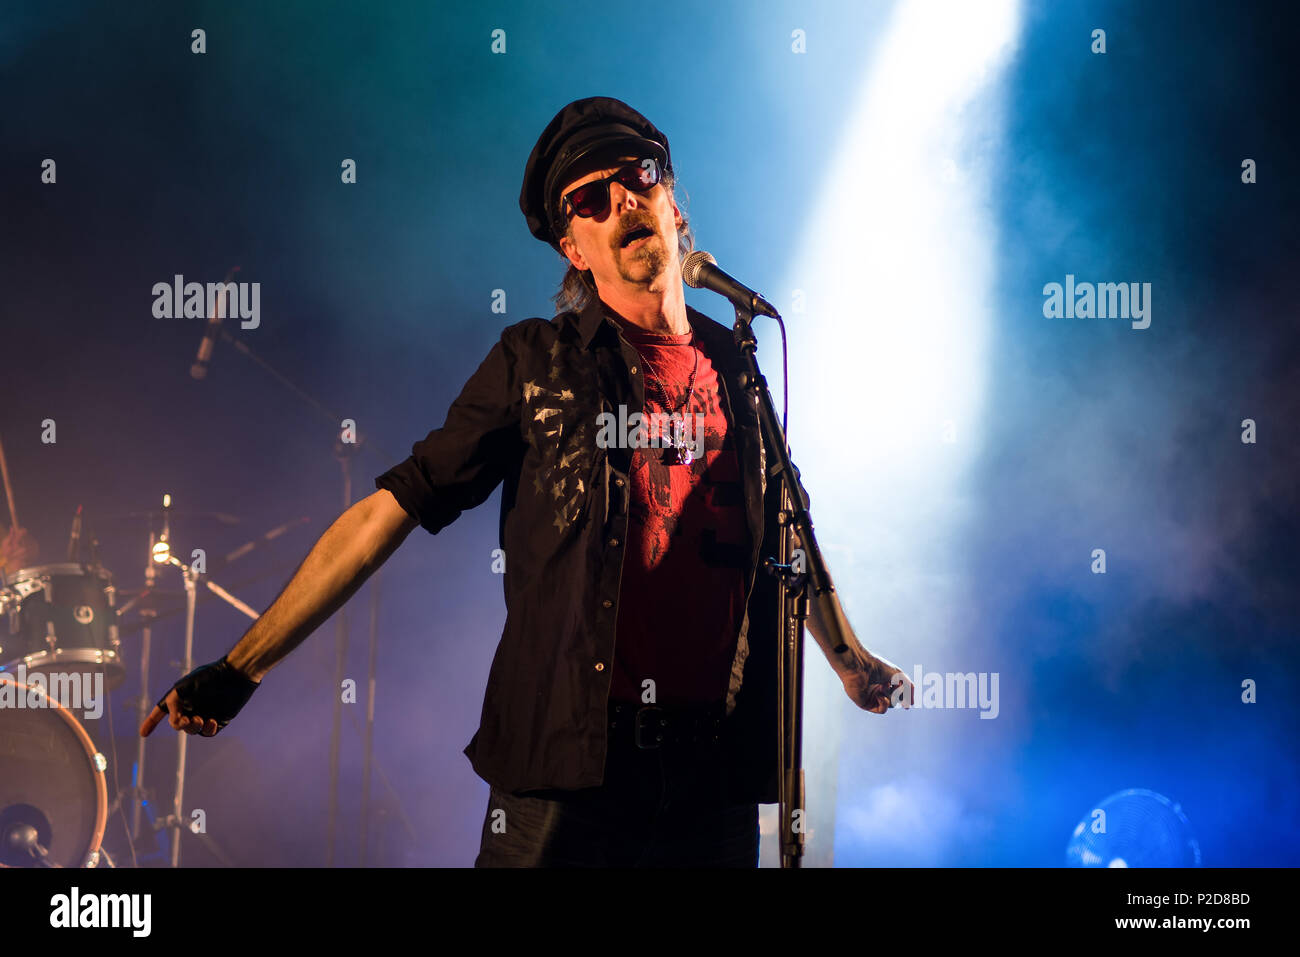 Rock lead singer on stage wearing a hat and sunglasses - Stock Image